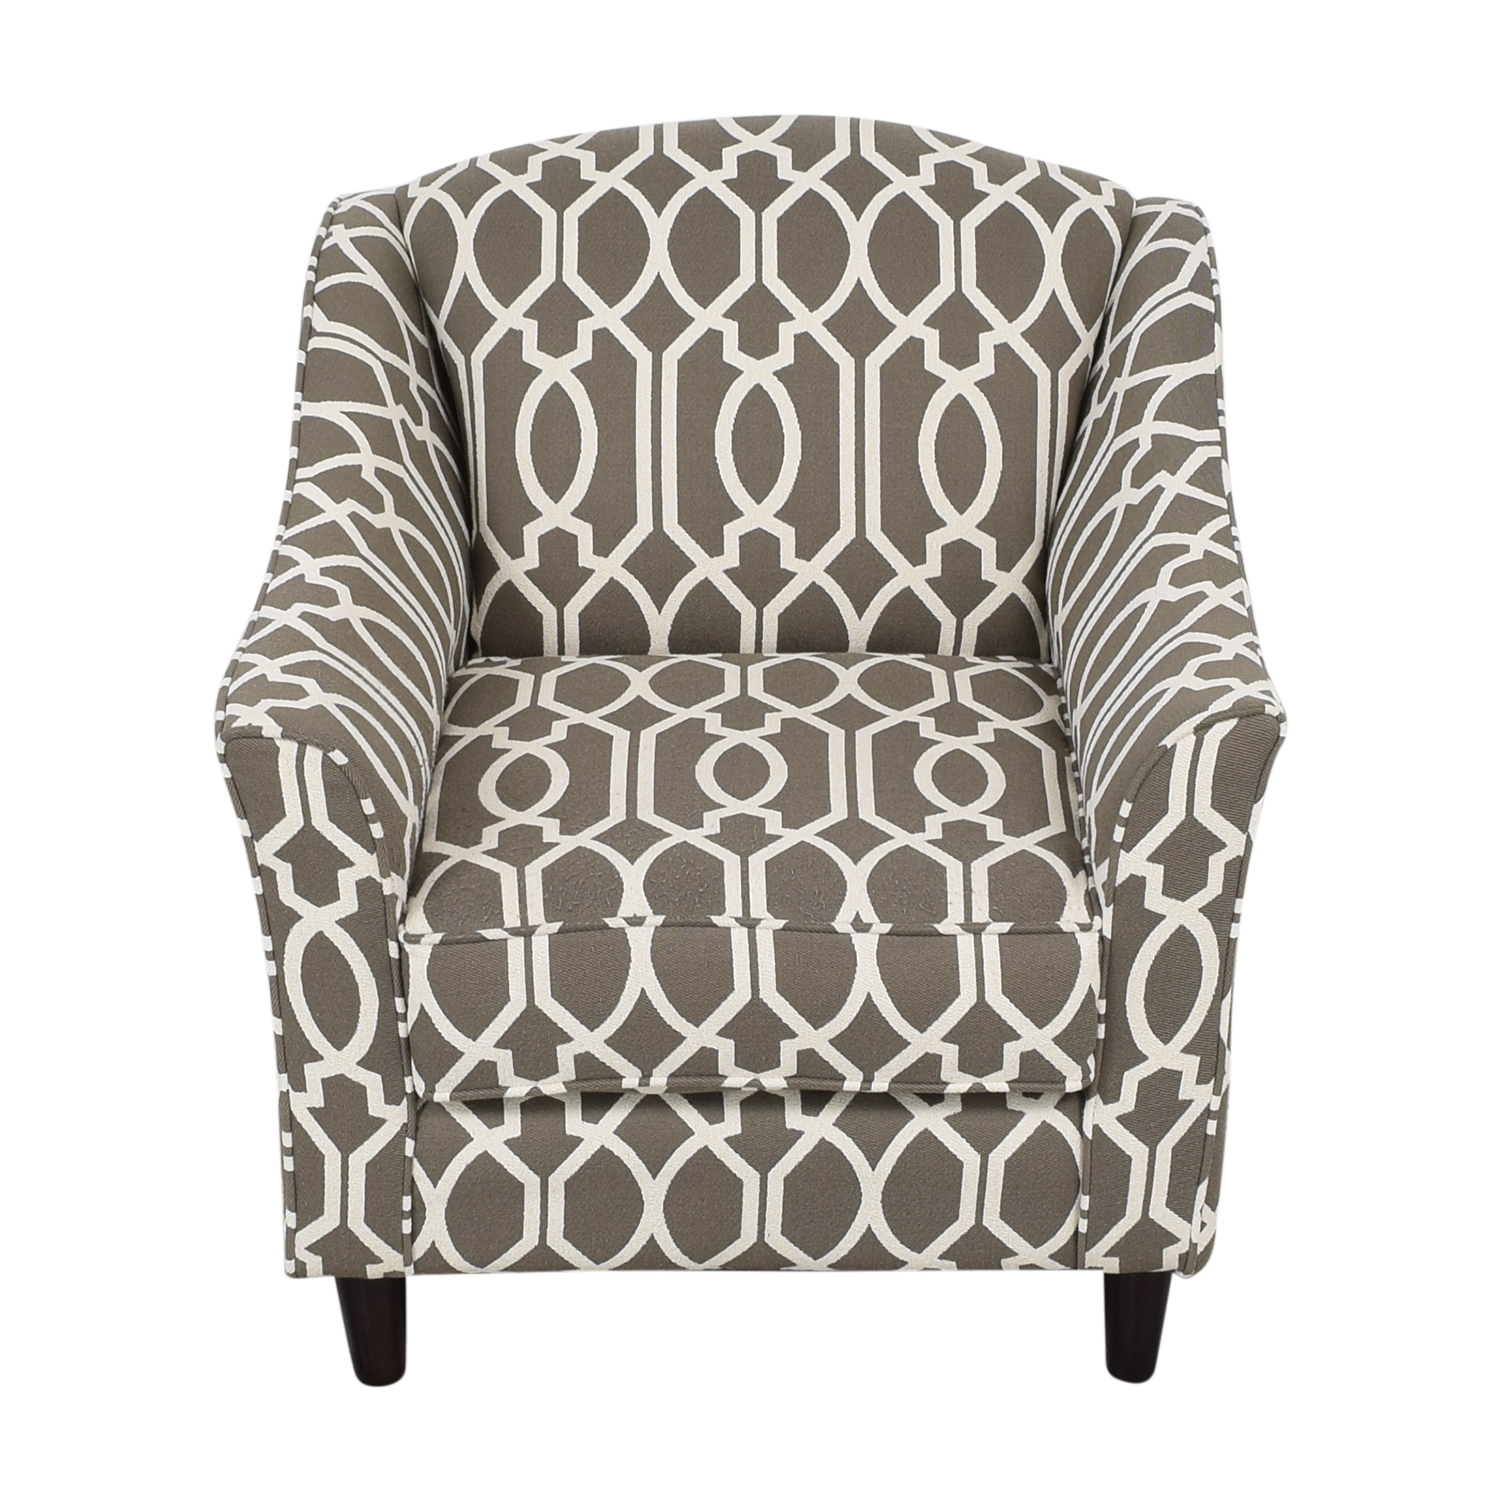 Raymour & Flanigan Raymour & Flanigan Accent Chair